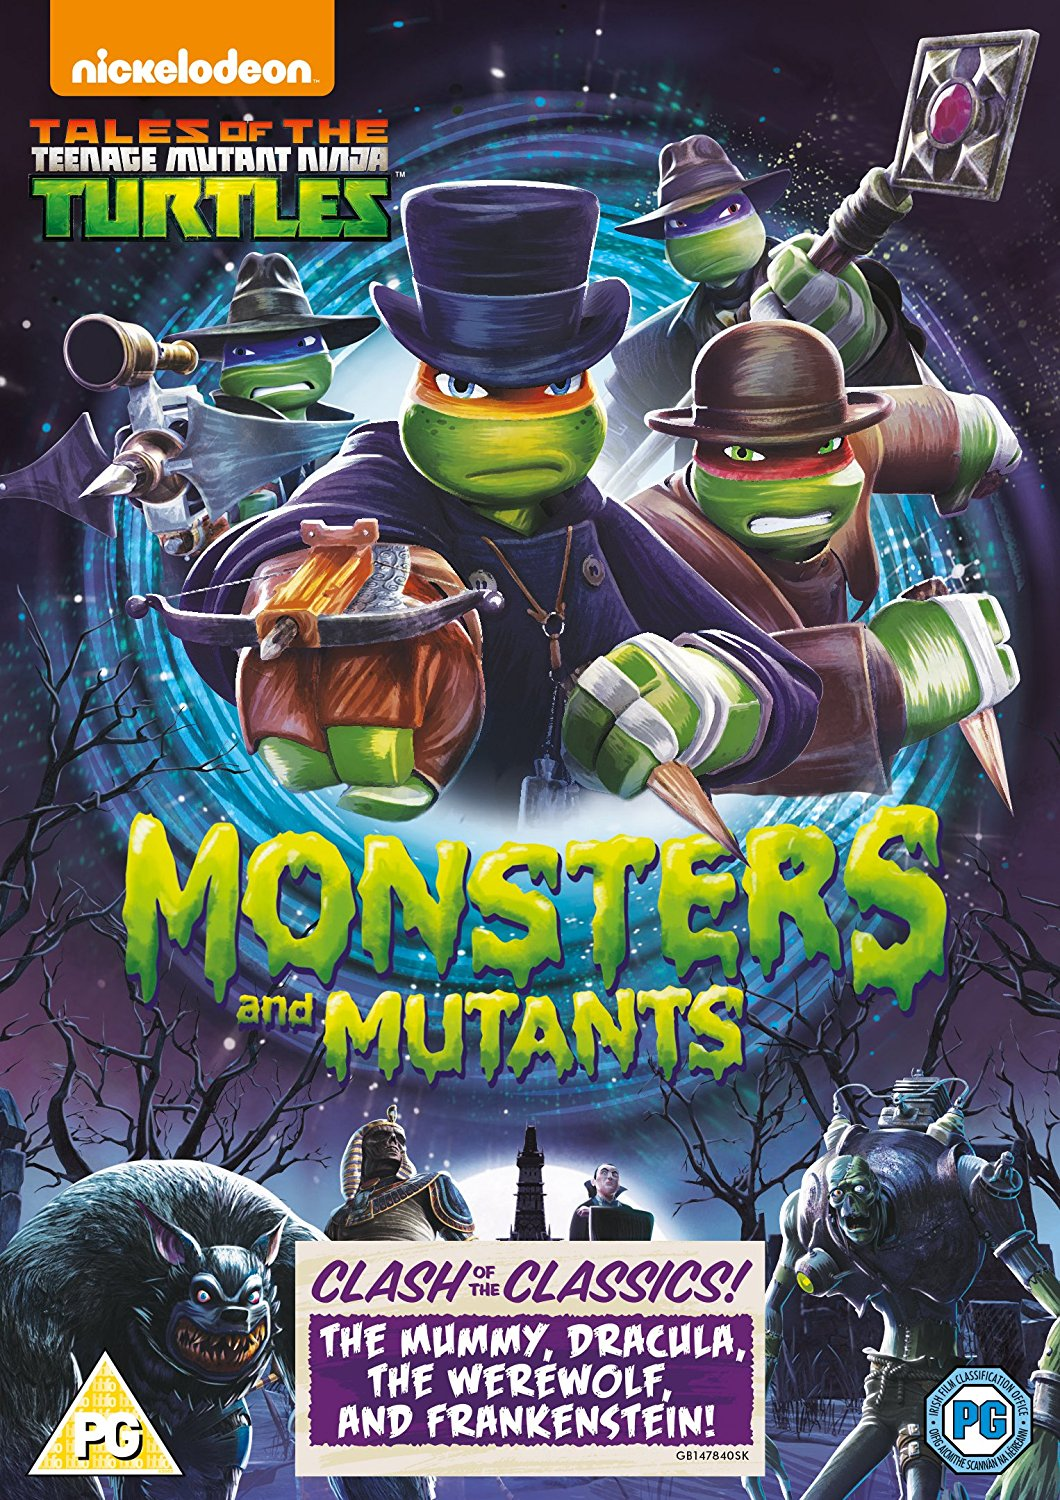 the werewolf and dr frankenstein in the brand new tales of the teenage mutant ninja turtles dvd teenage mutant ninja turtles monsters and mutants